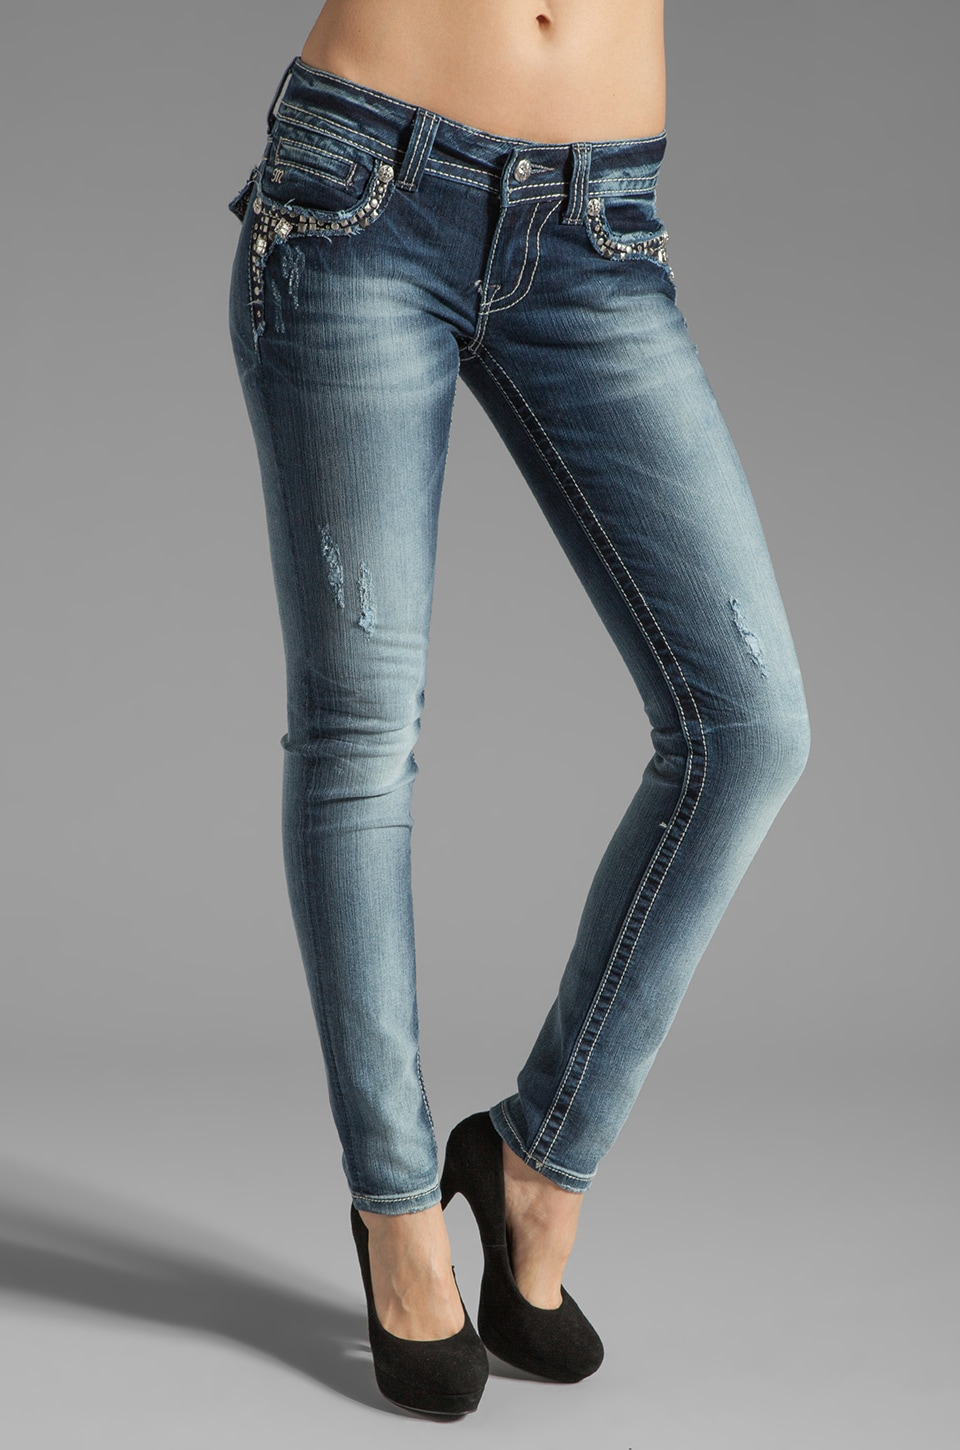 Miss Me Jeans Skinny in Medium